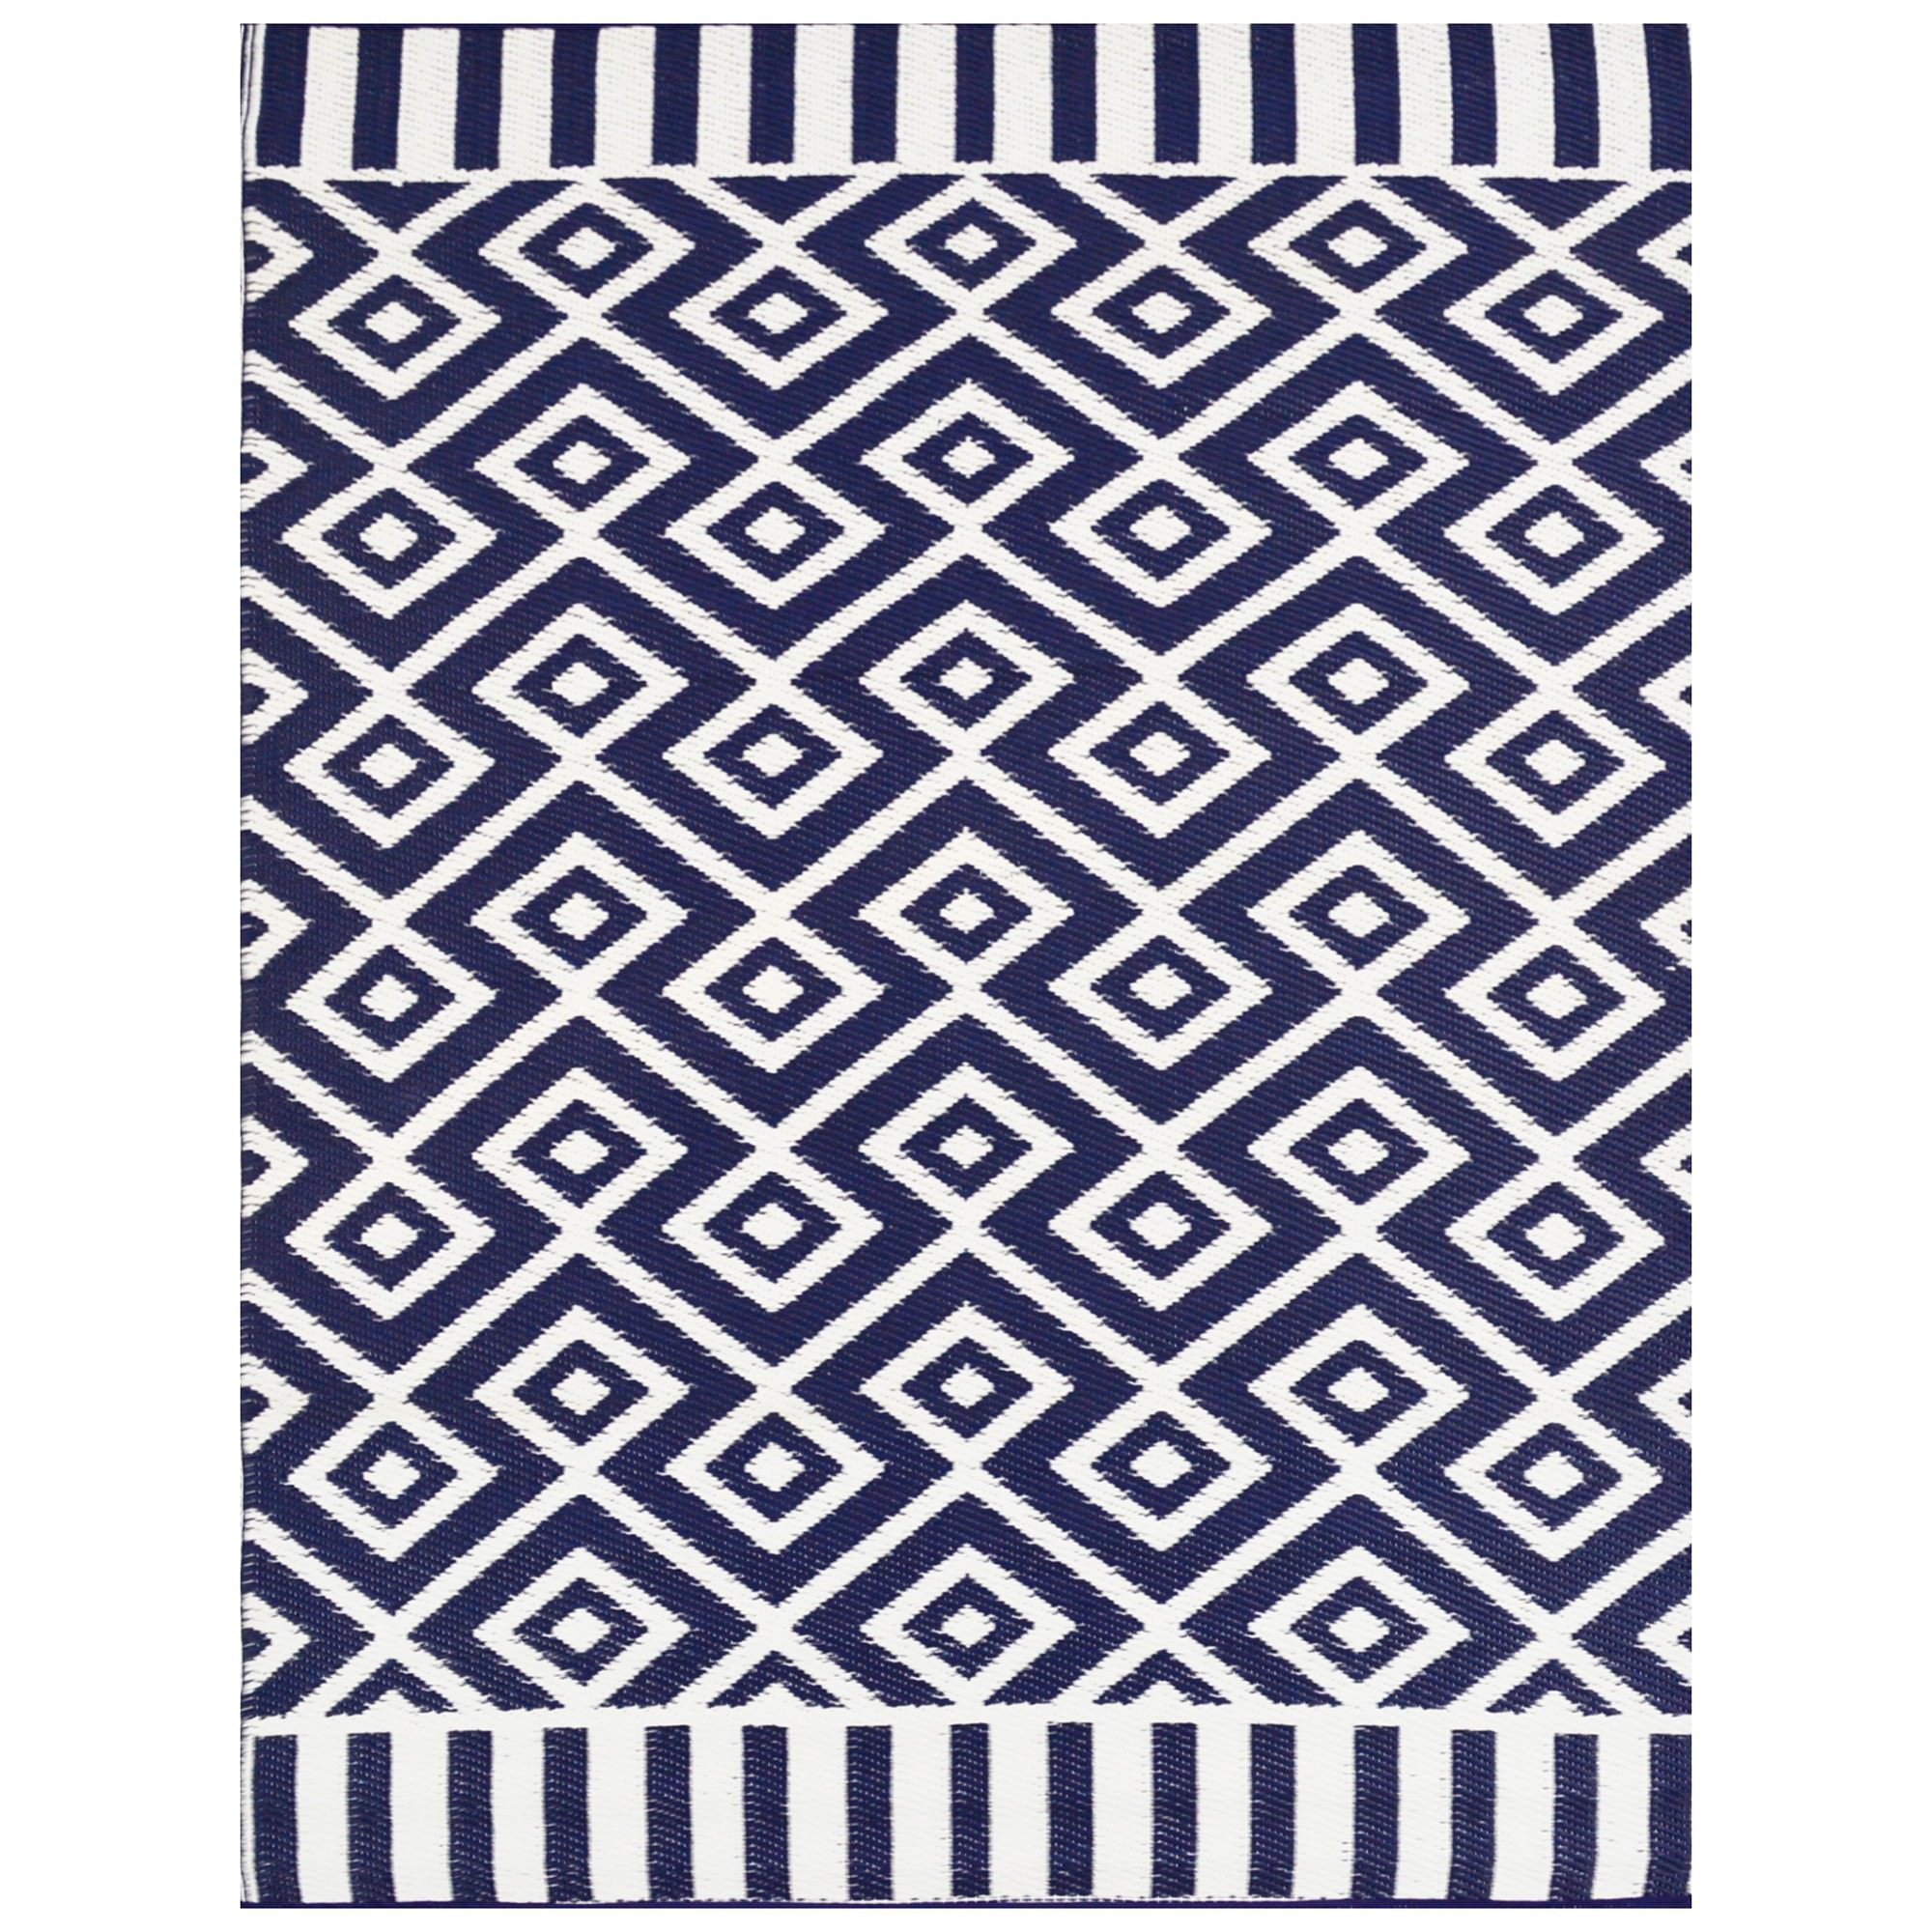 Chatai Aztec No.002 Reversible Outdoor Rug, 240x150cm, Navy/White